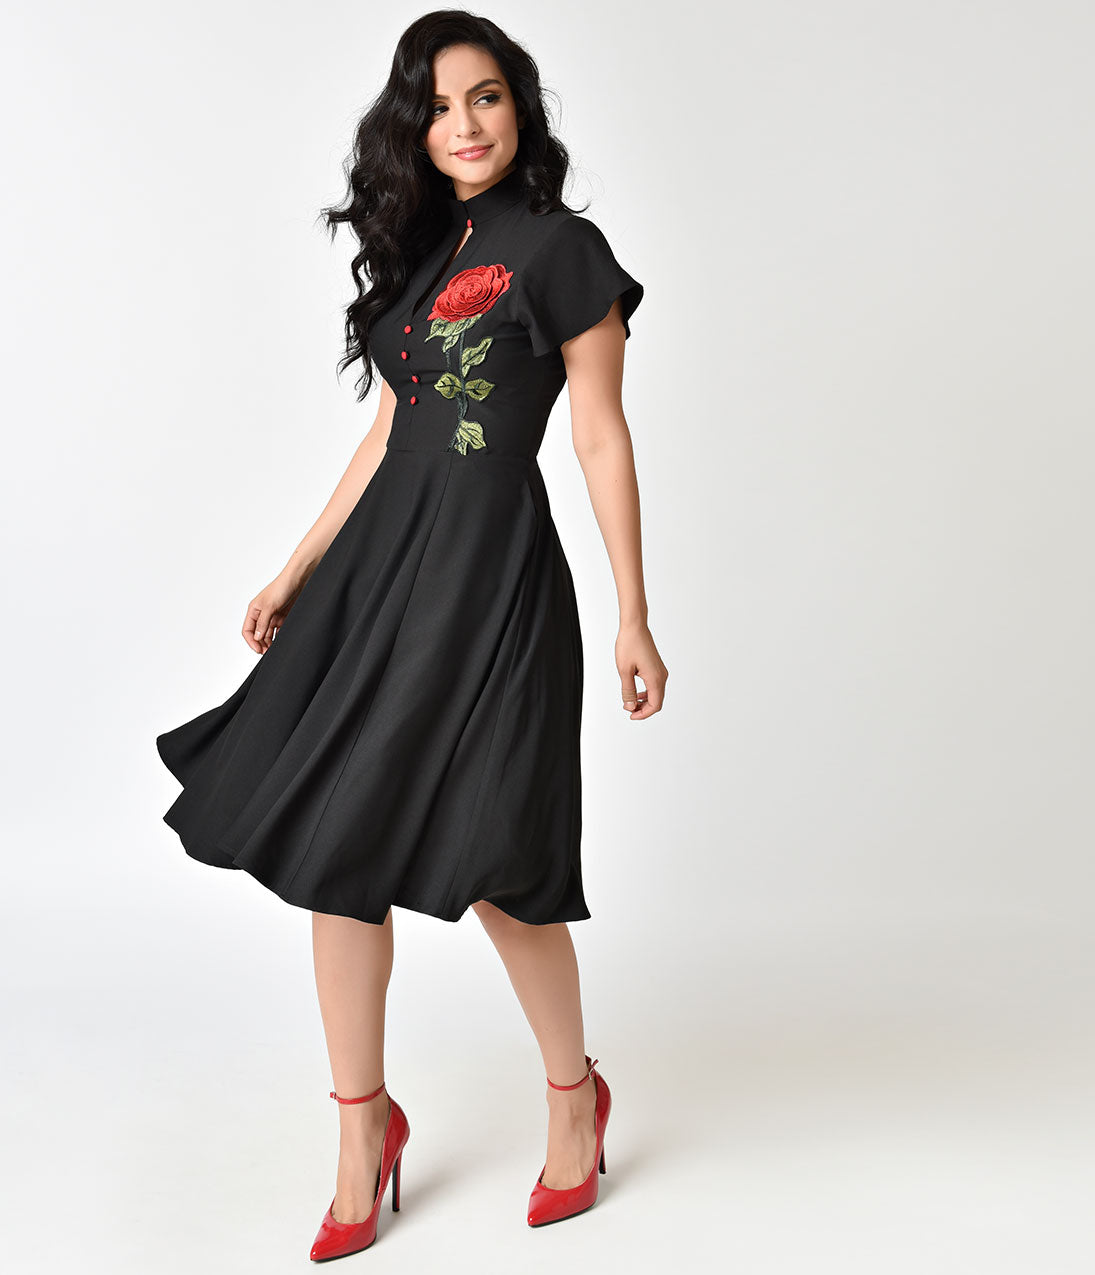 Fifties Dresses : 1950s Style Swing to Wiggle Dresses Unique Vintage 1950S Black  Embroidered Red Rose Baltimore Swing Dress $98.00 AT vintagedancer.com